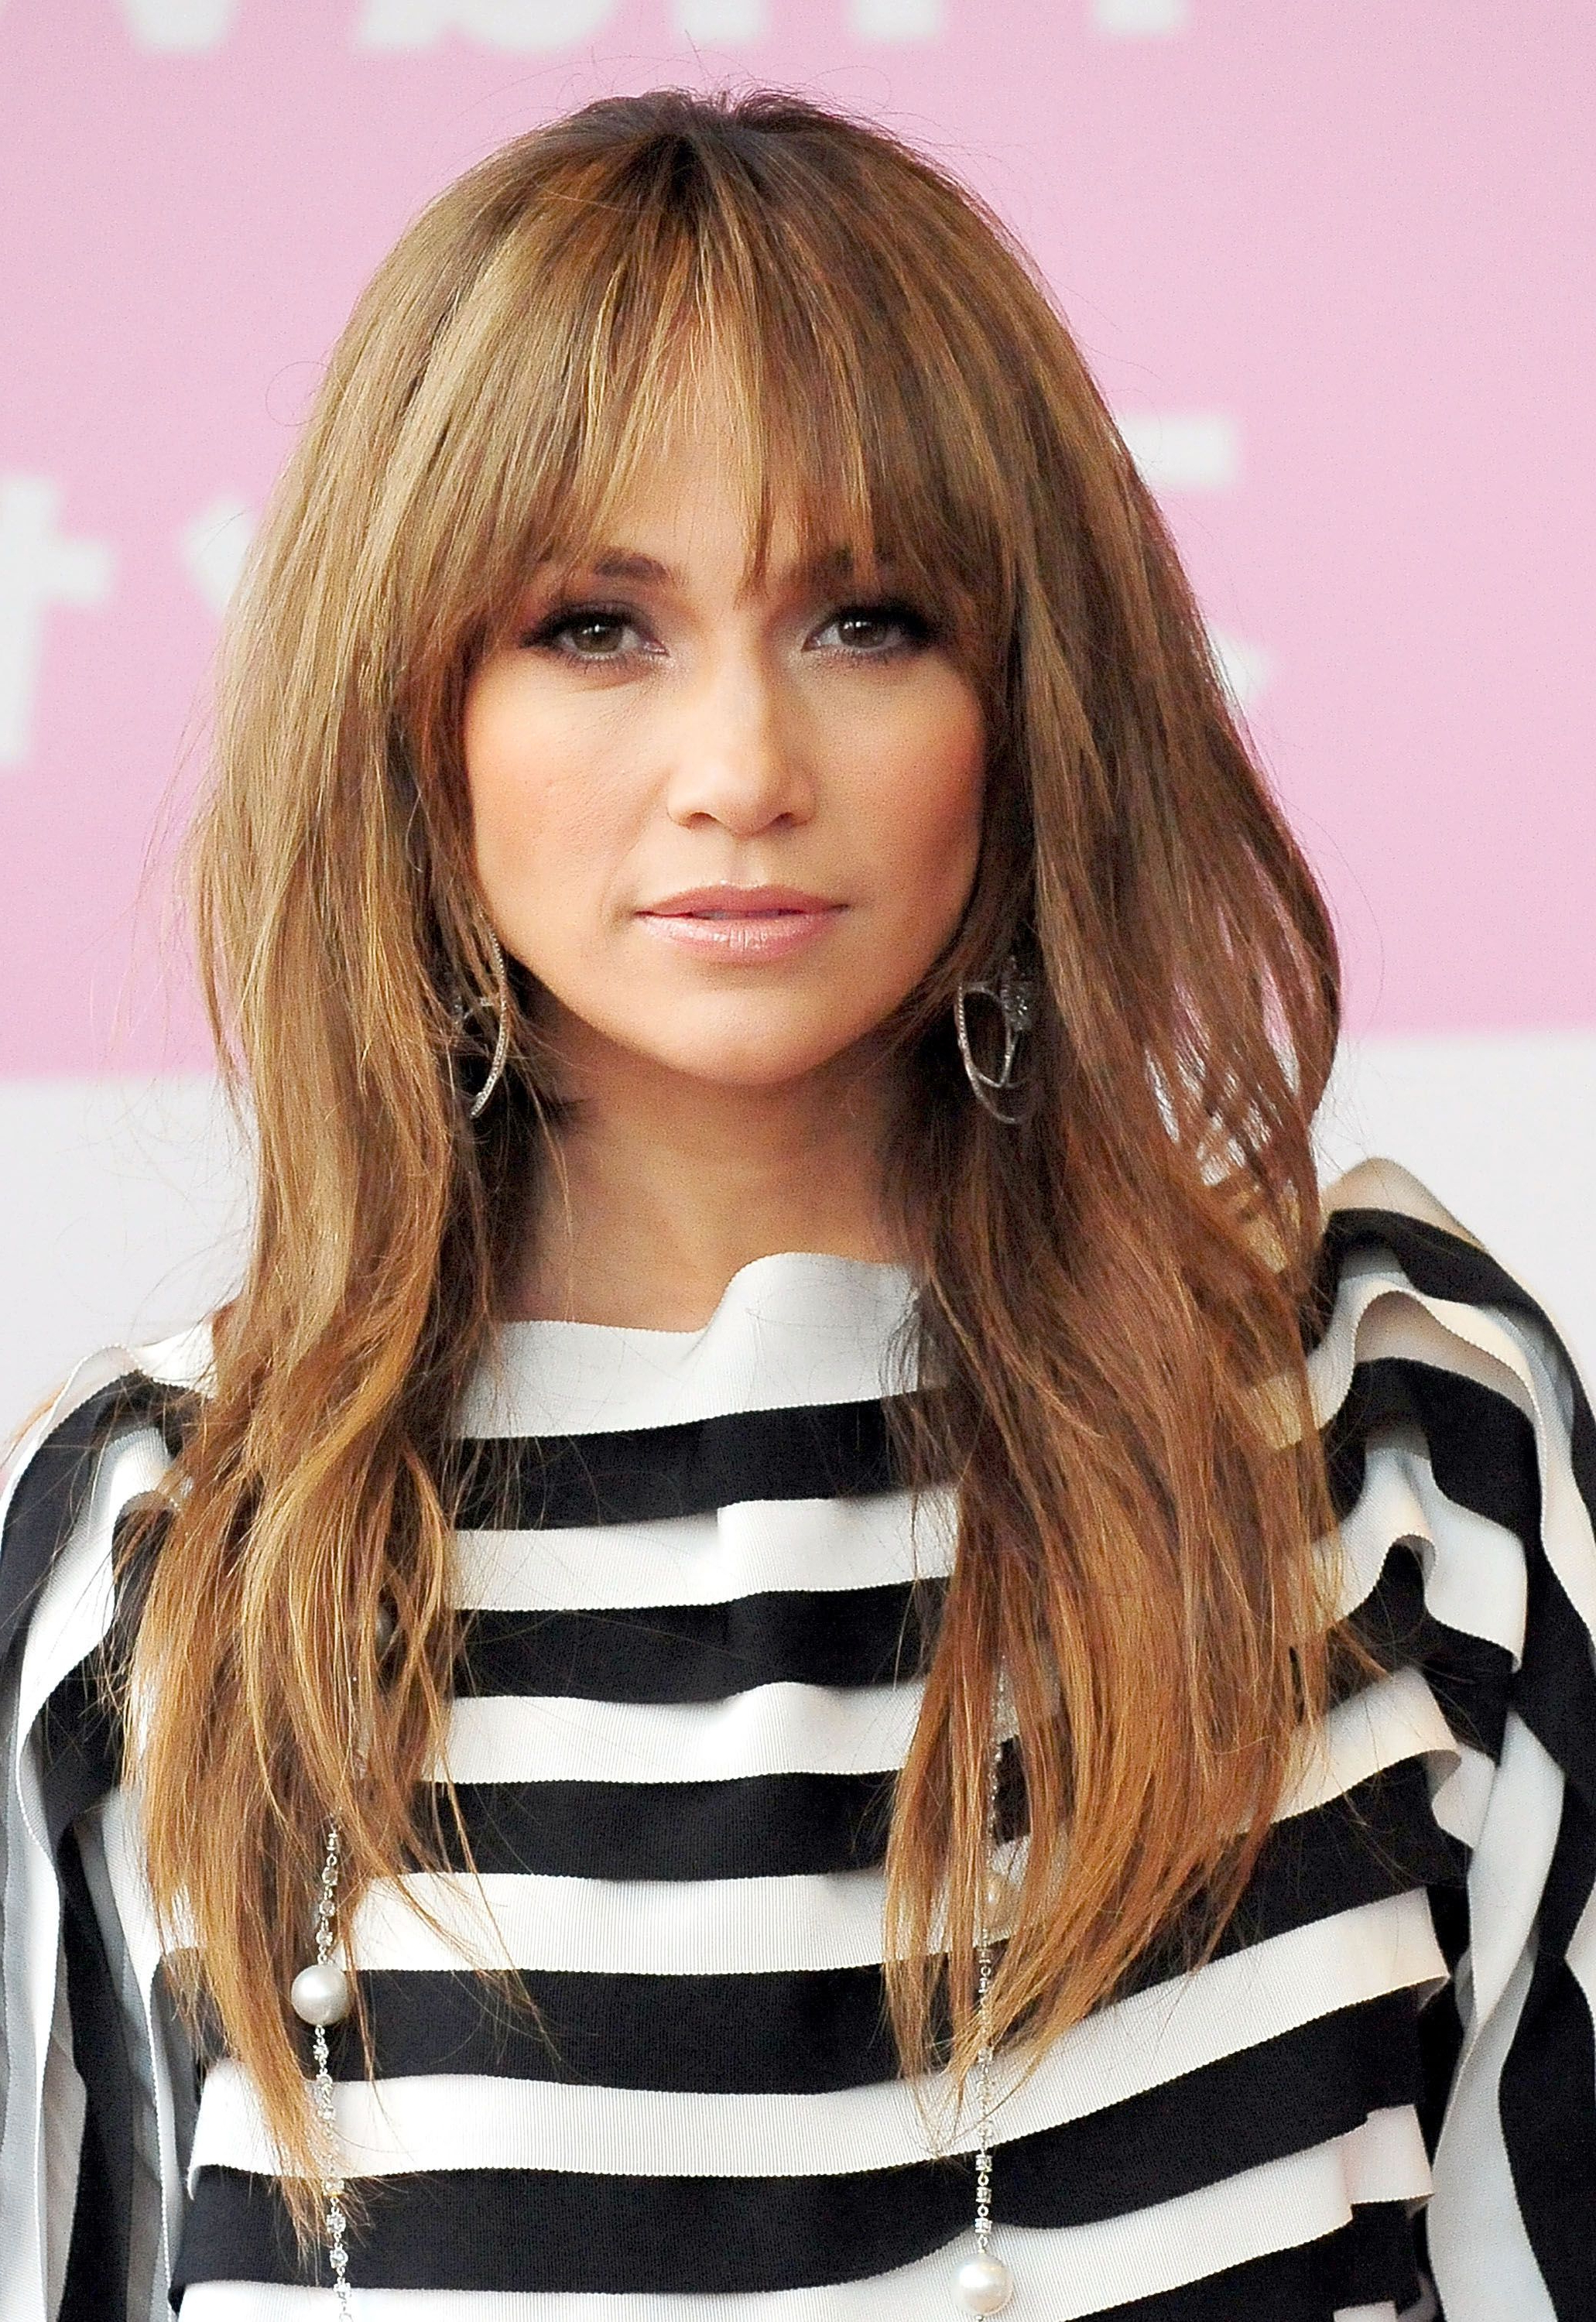 35 Long Hairstyles With Bangs – Best Celebrity Long Hair With Bangs In Choppy Blonde Pixie Hairstyles With Long Side Bangs (View 4 of 20)